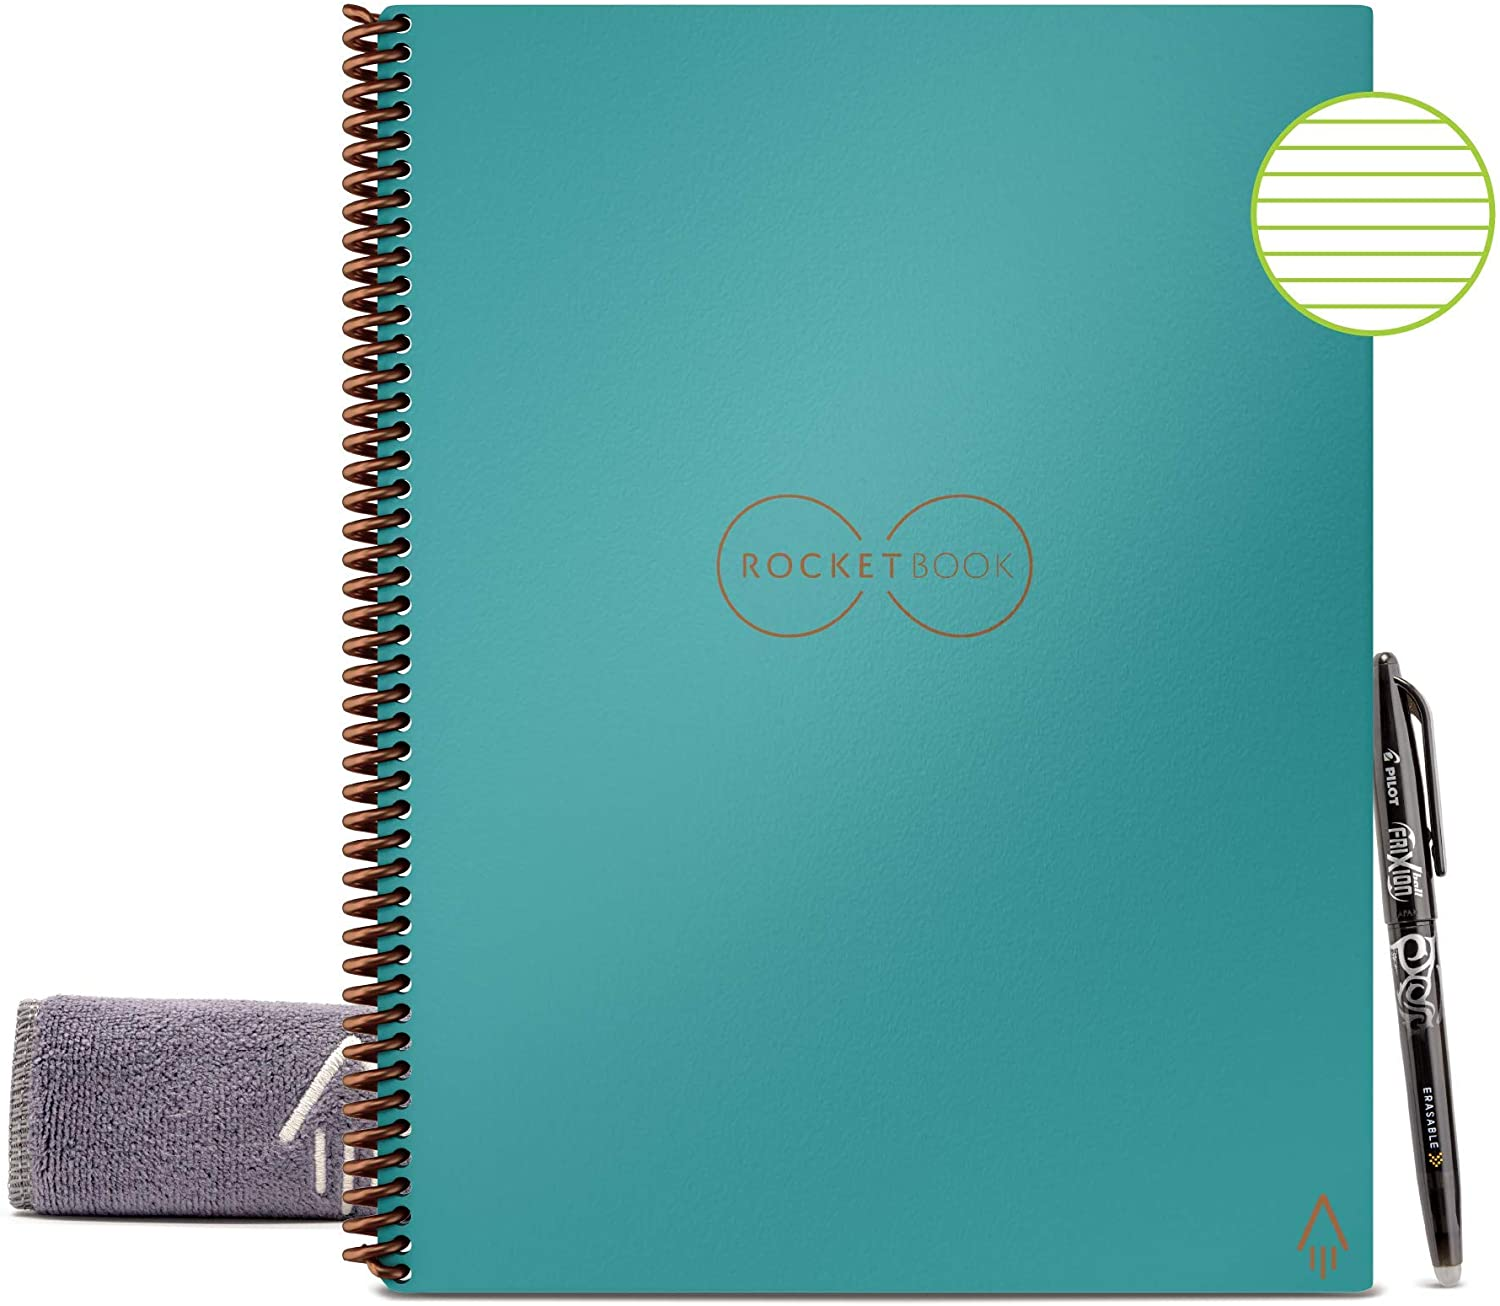 Smart Reusable Notebook Who Uses This